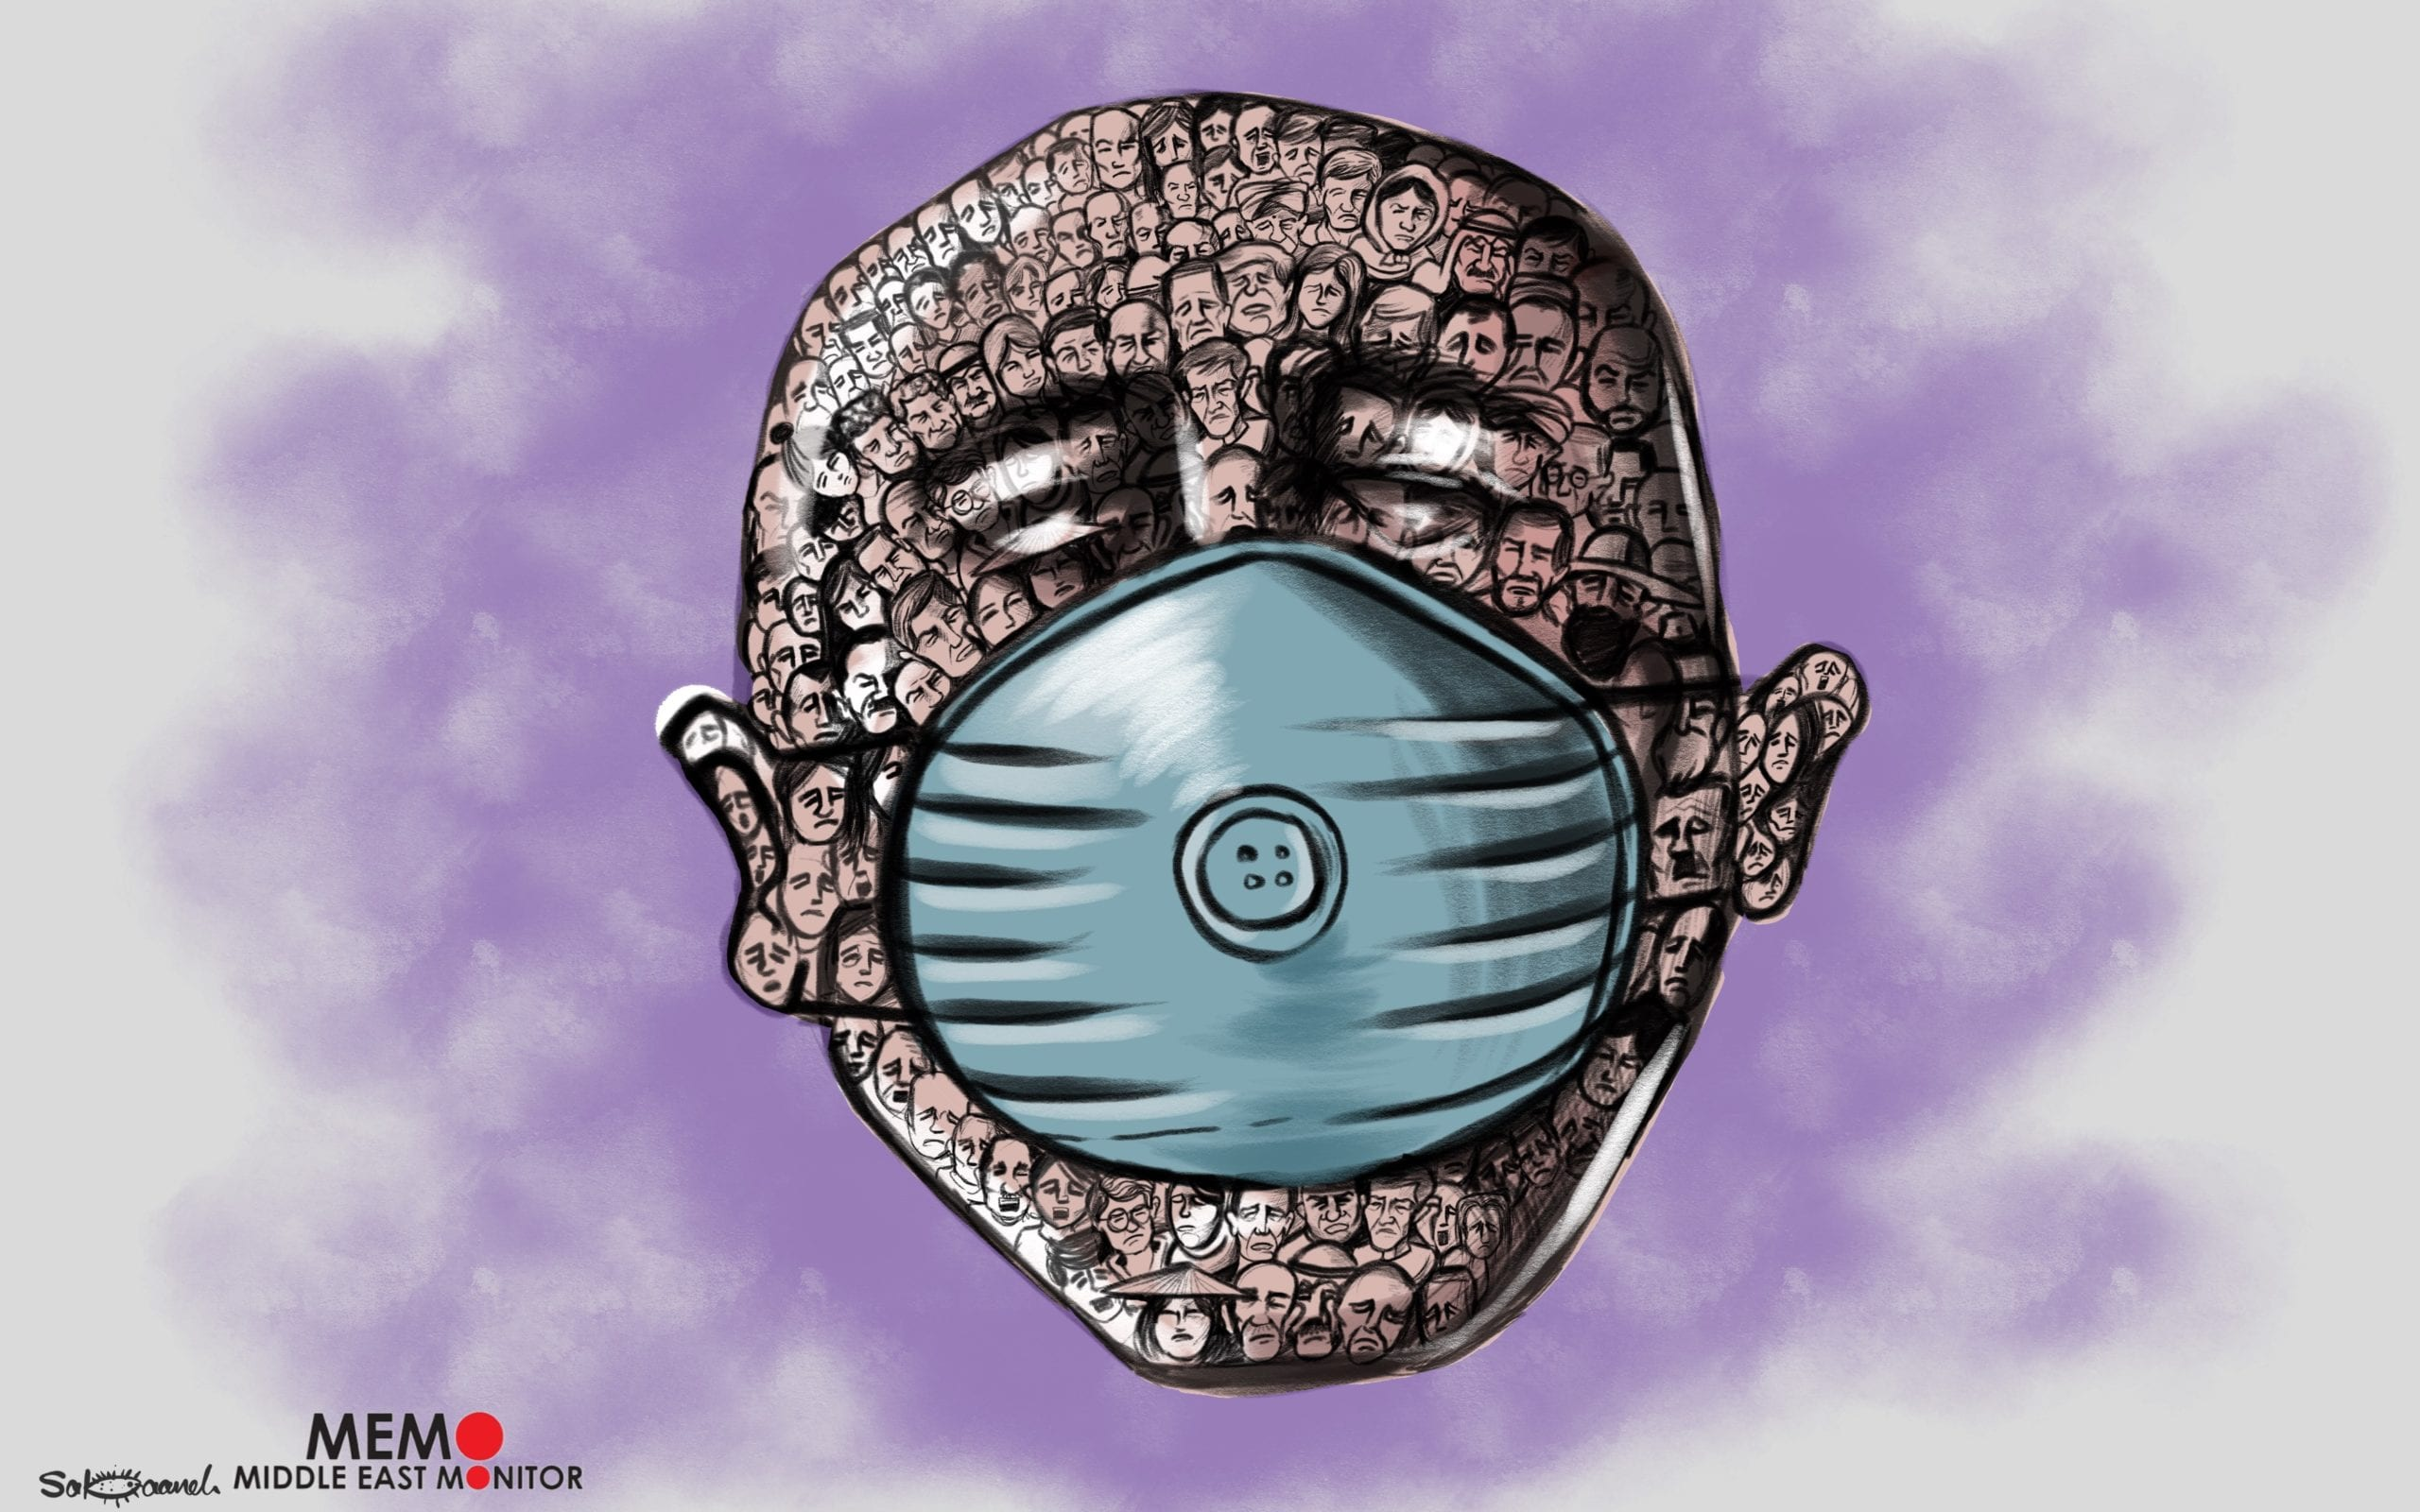 Coronavirus is affecting the whole world, will it unite us - Cartoon [Sabaaneh/MiddleEastMonitor]